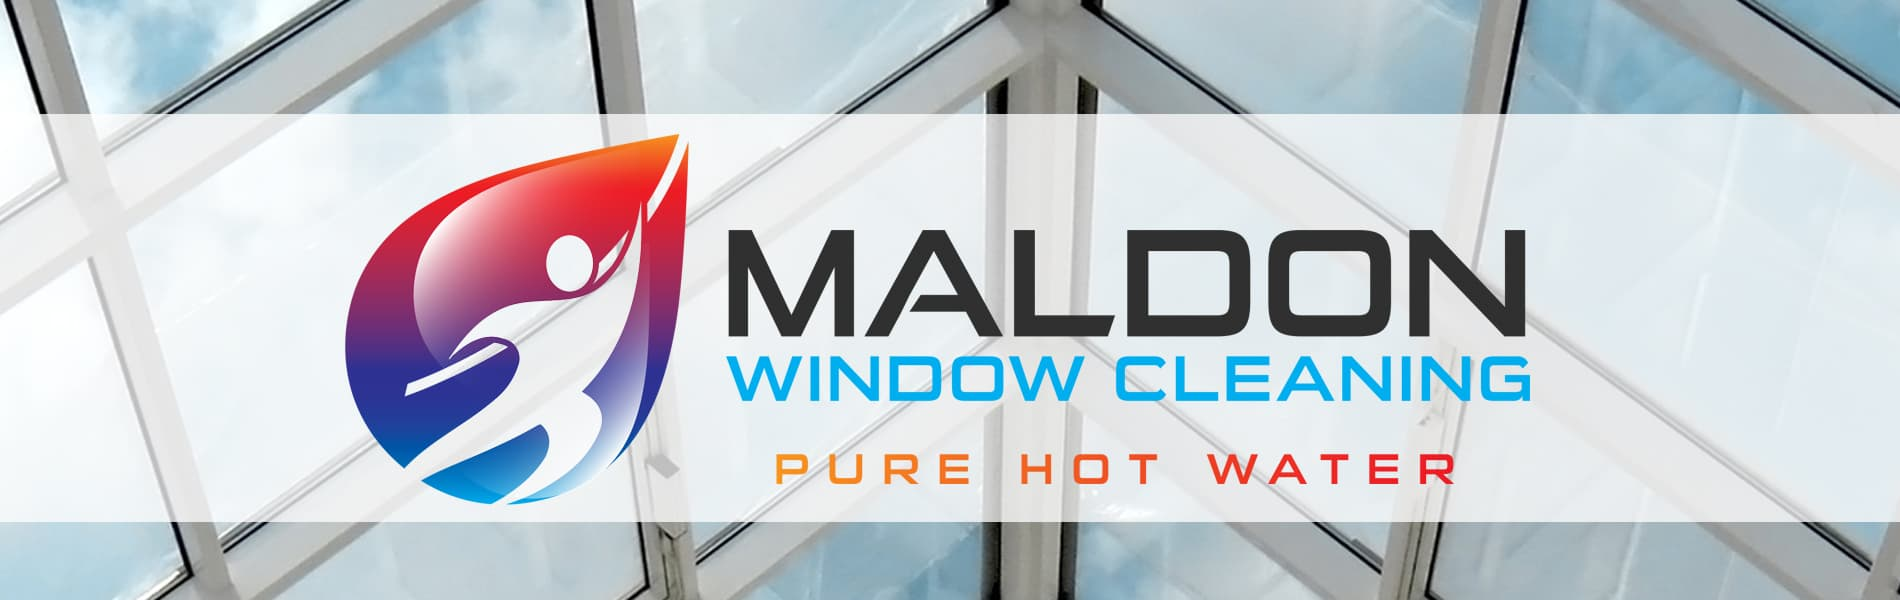 maldon-window-cleaning-services-essex